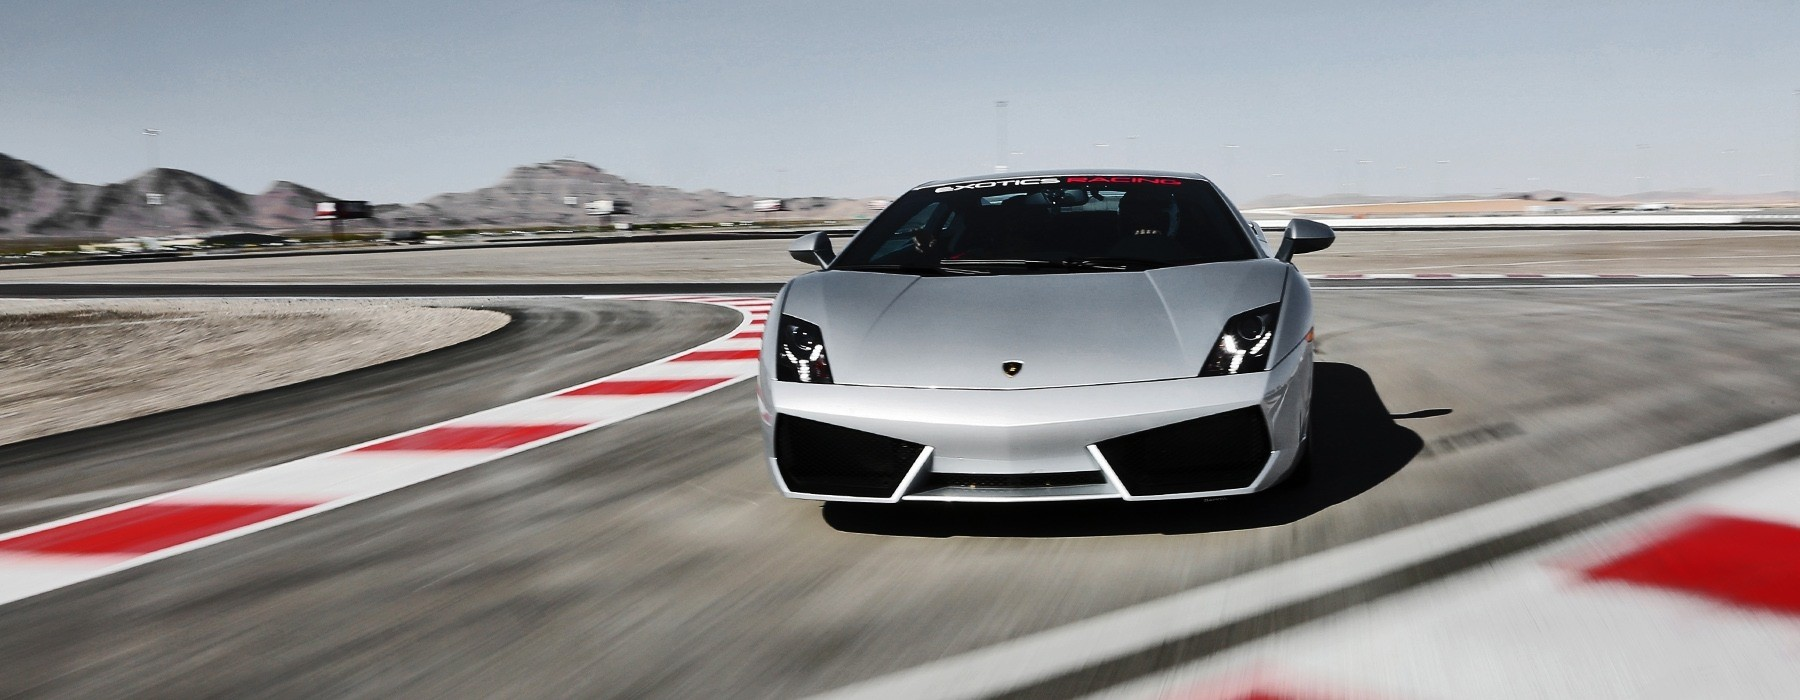 Dream Dealers Racing: Lamborghini Gallardo - 5 laps